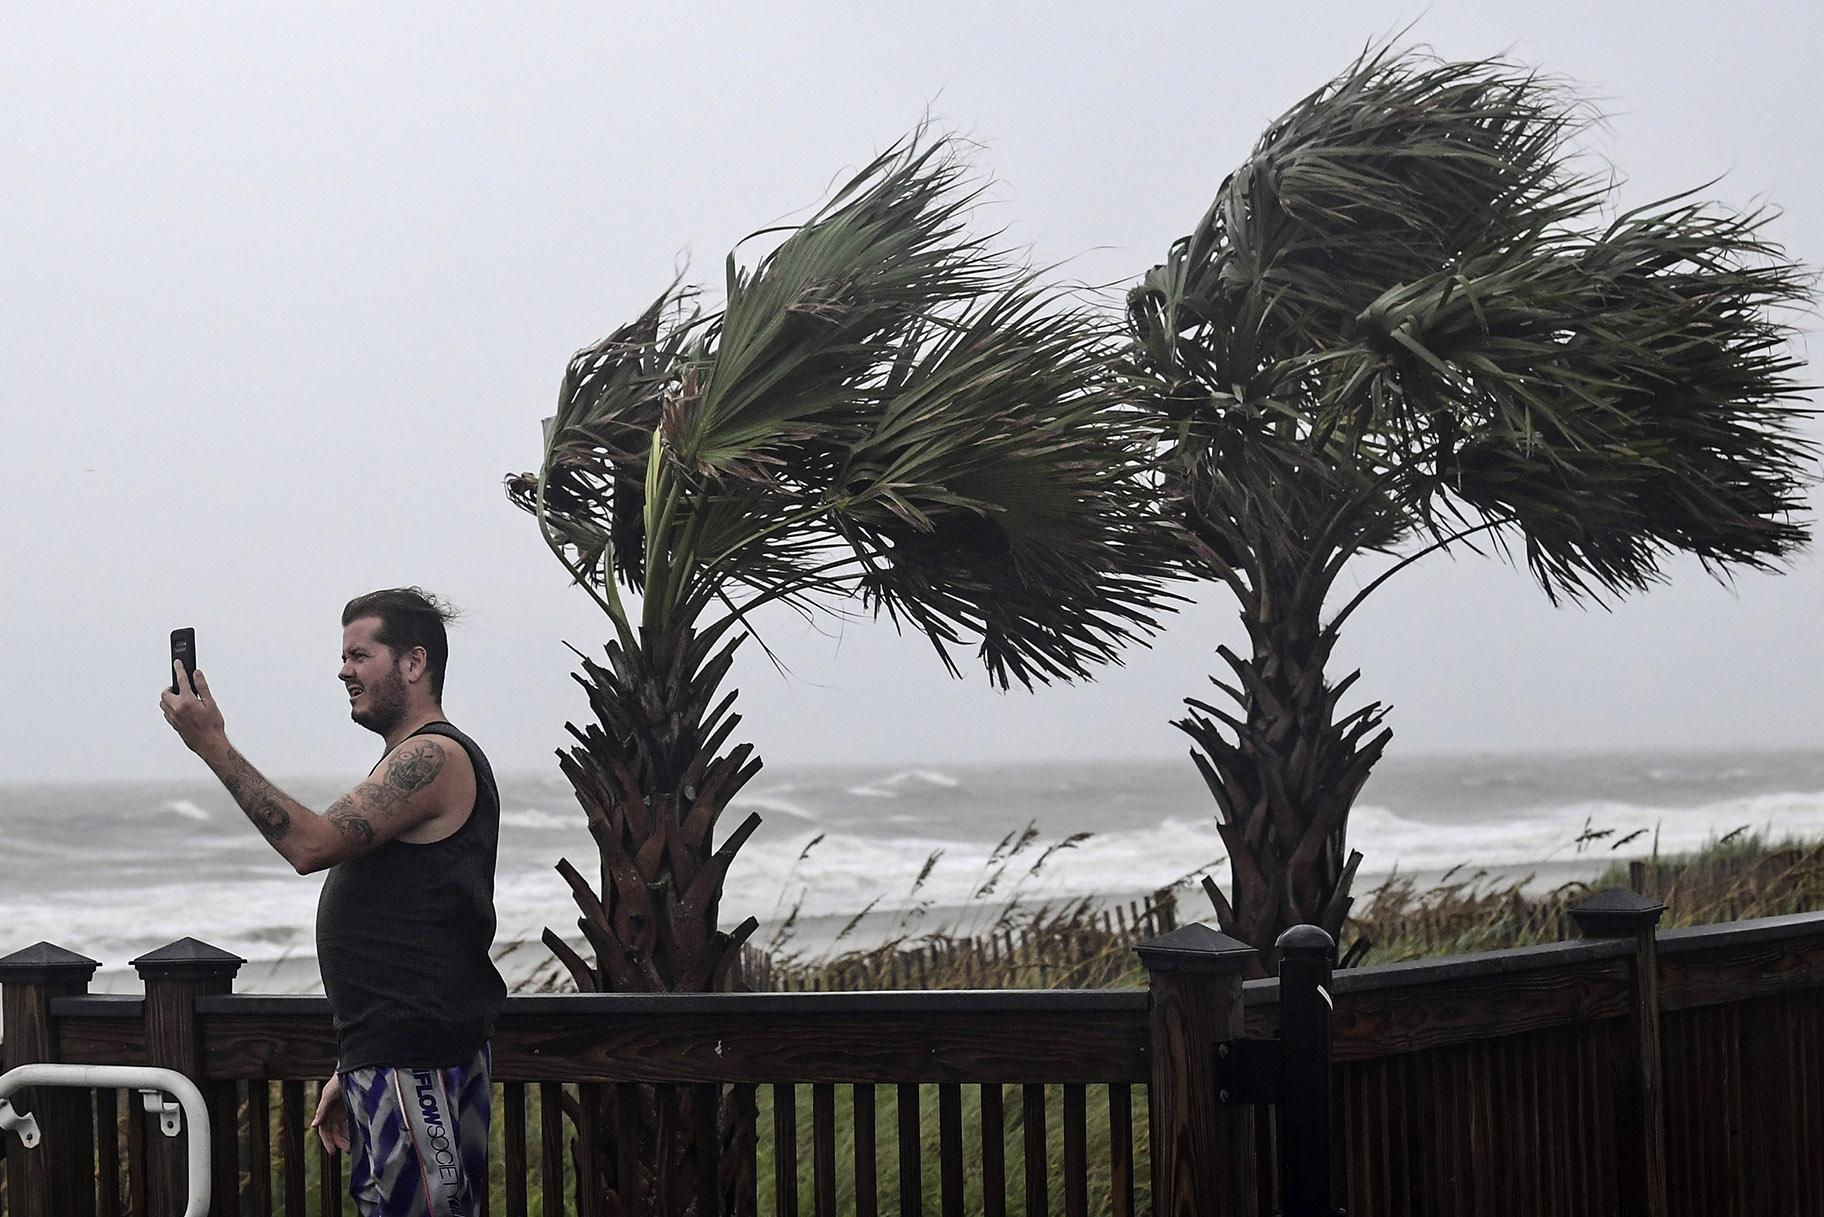 William Ellinge, of Murrells Inlet, S.C., takes photos of waves crashing on the shore in Myrtle Beach, S.C., Thursday, Sept. 5, 2019, as Hurricane Dorian moves north off the coast. (Ken Ruinard / The Independent-Mail via AP)